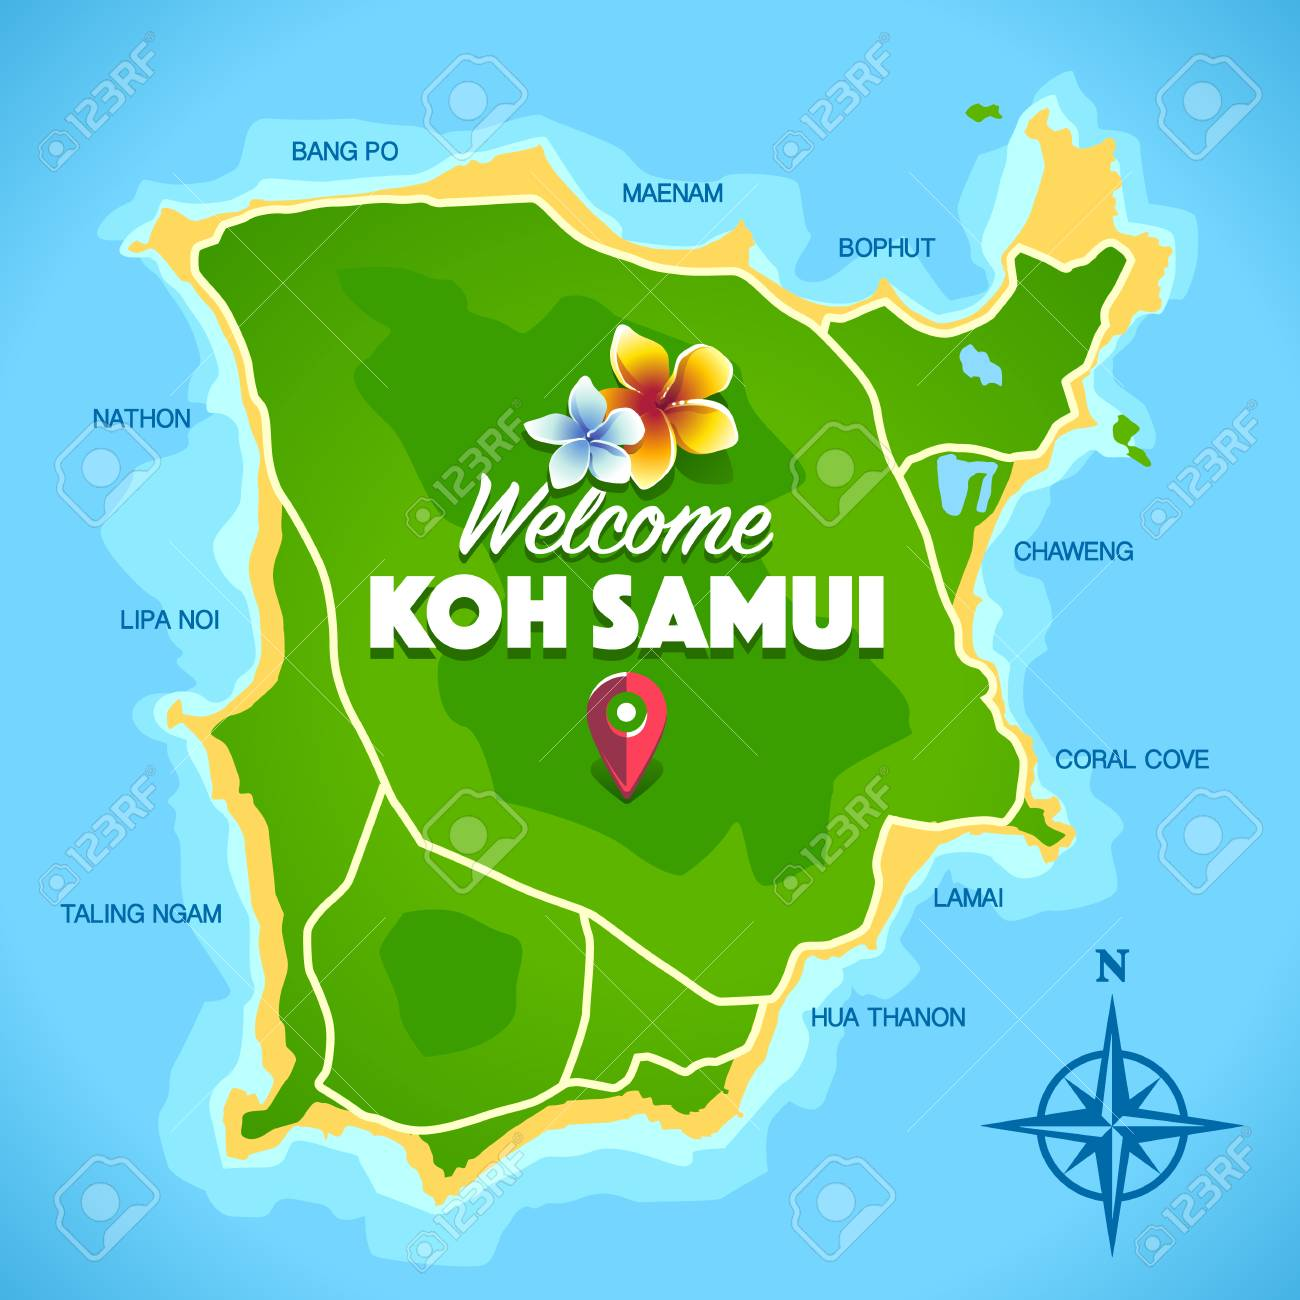 koh samui thailand island artistic map with typography â welcome